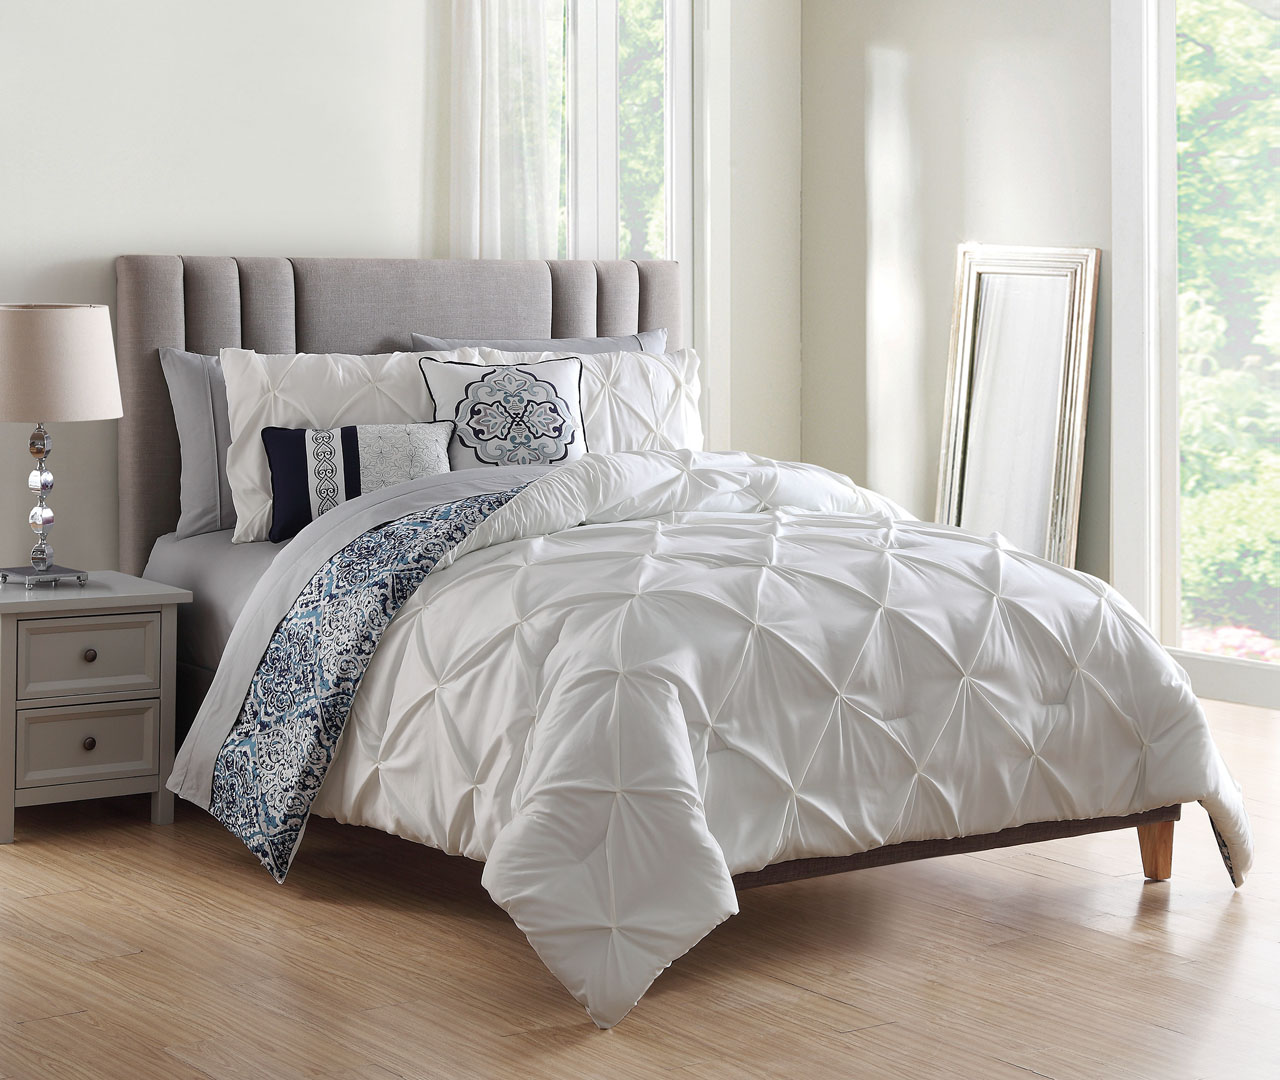 9 Piece Tawny White/Navy w/Cotton Sheets Comforter Set